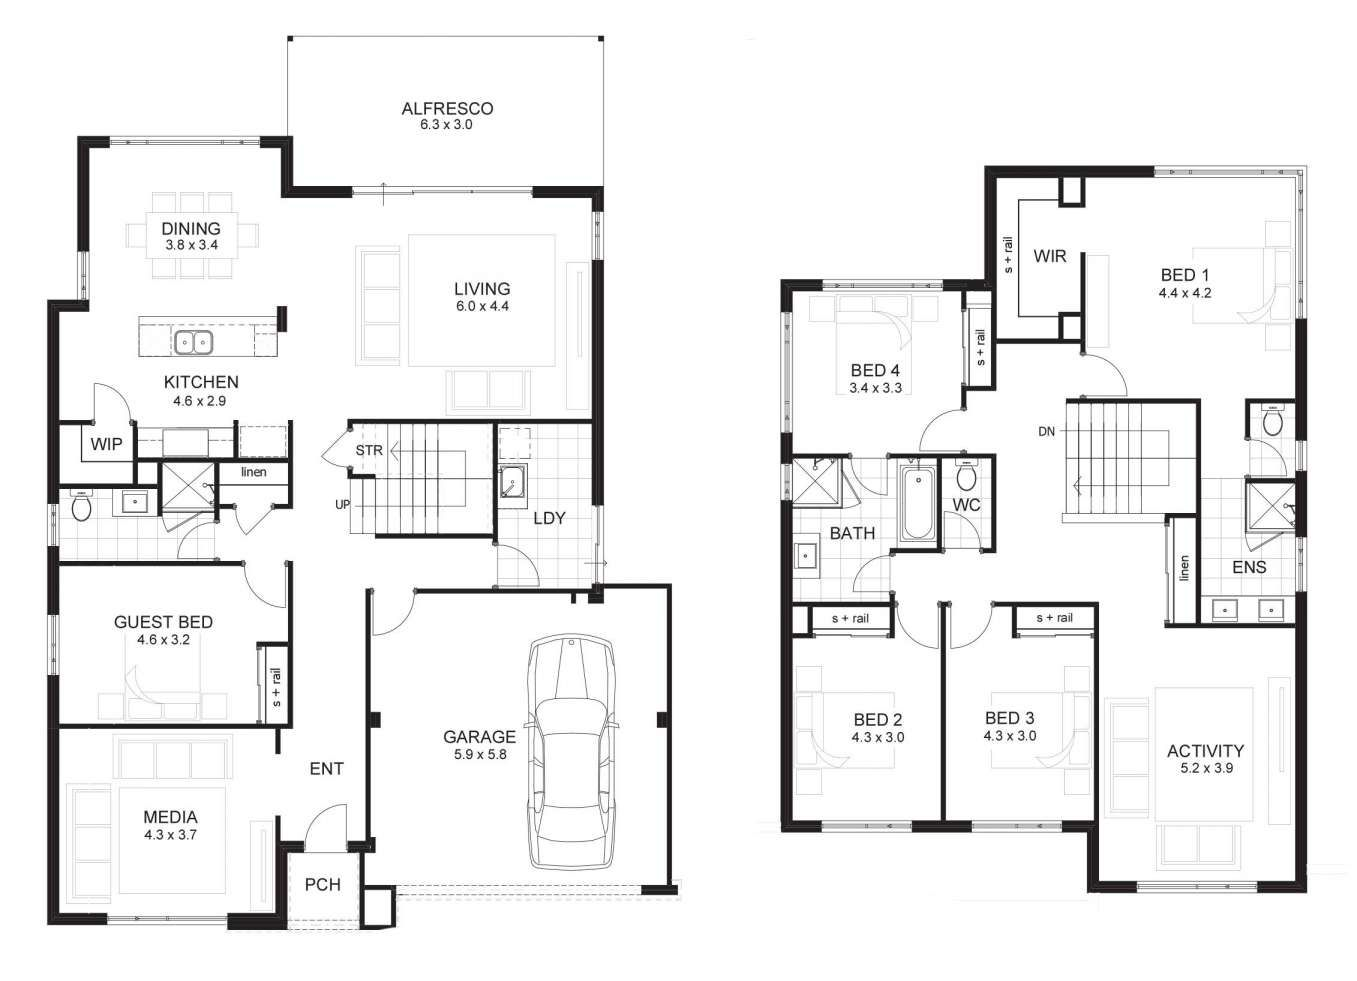 6 Bedroom 2 Story House Plans 3D and Images Of Bedroom ...